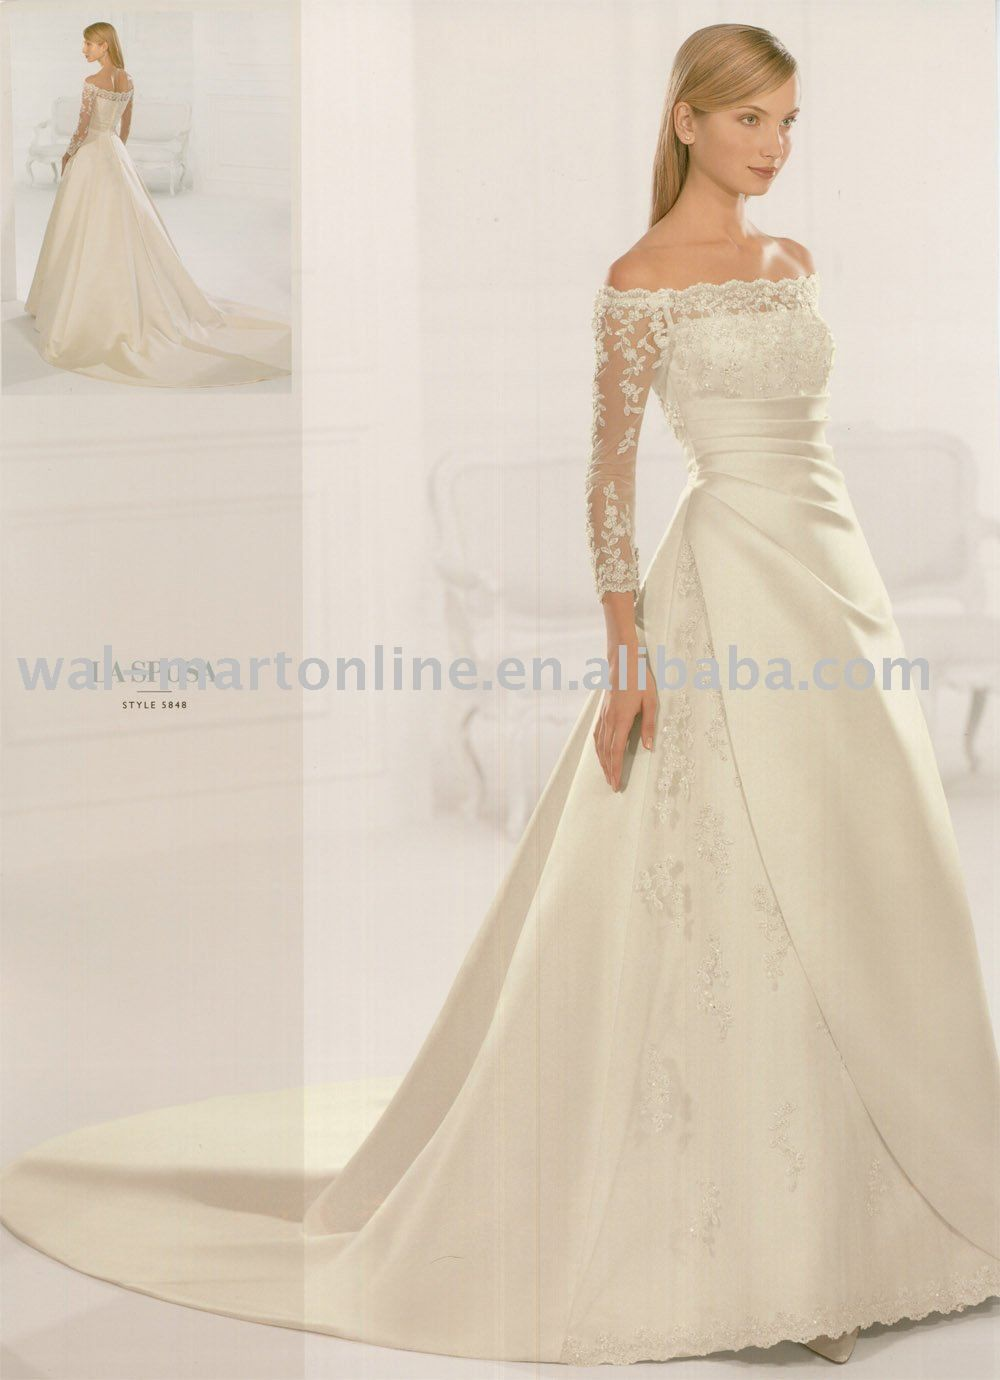 So elegant wedding dresses pinterest wedding dress